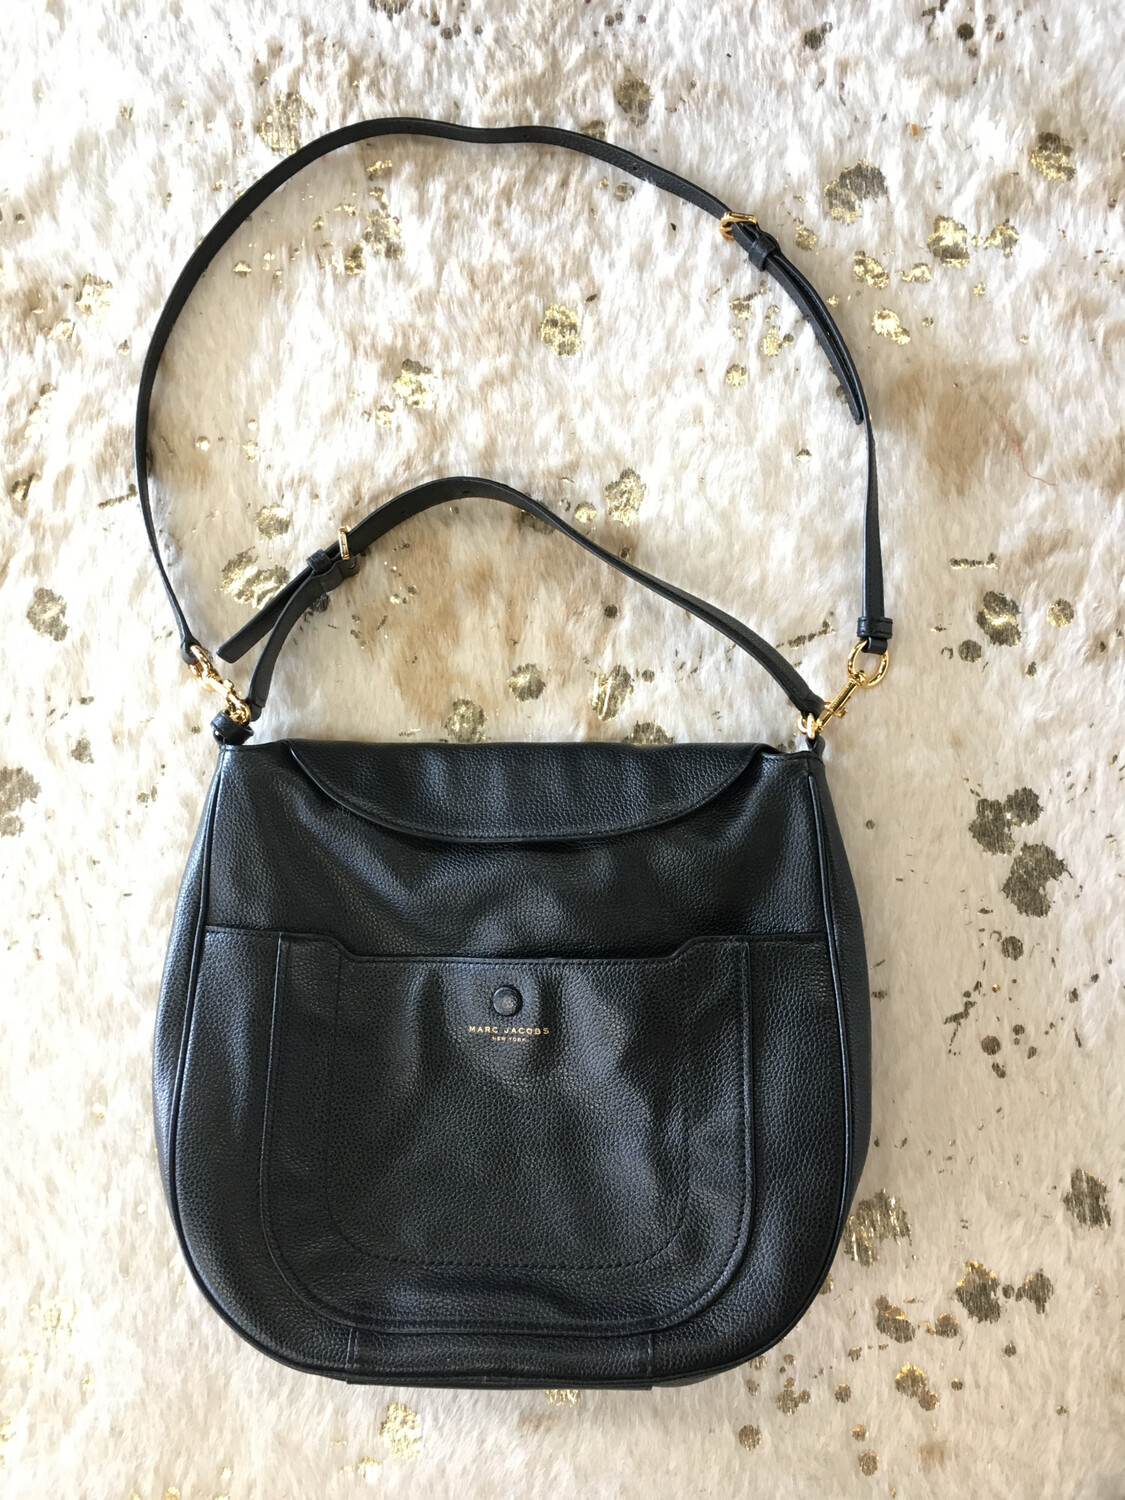 Marc Jacobs Black Purse